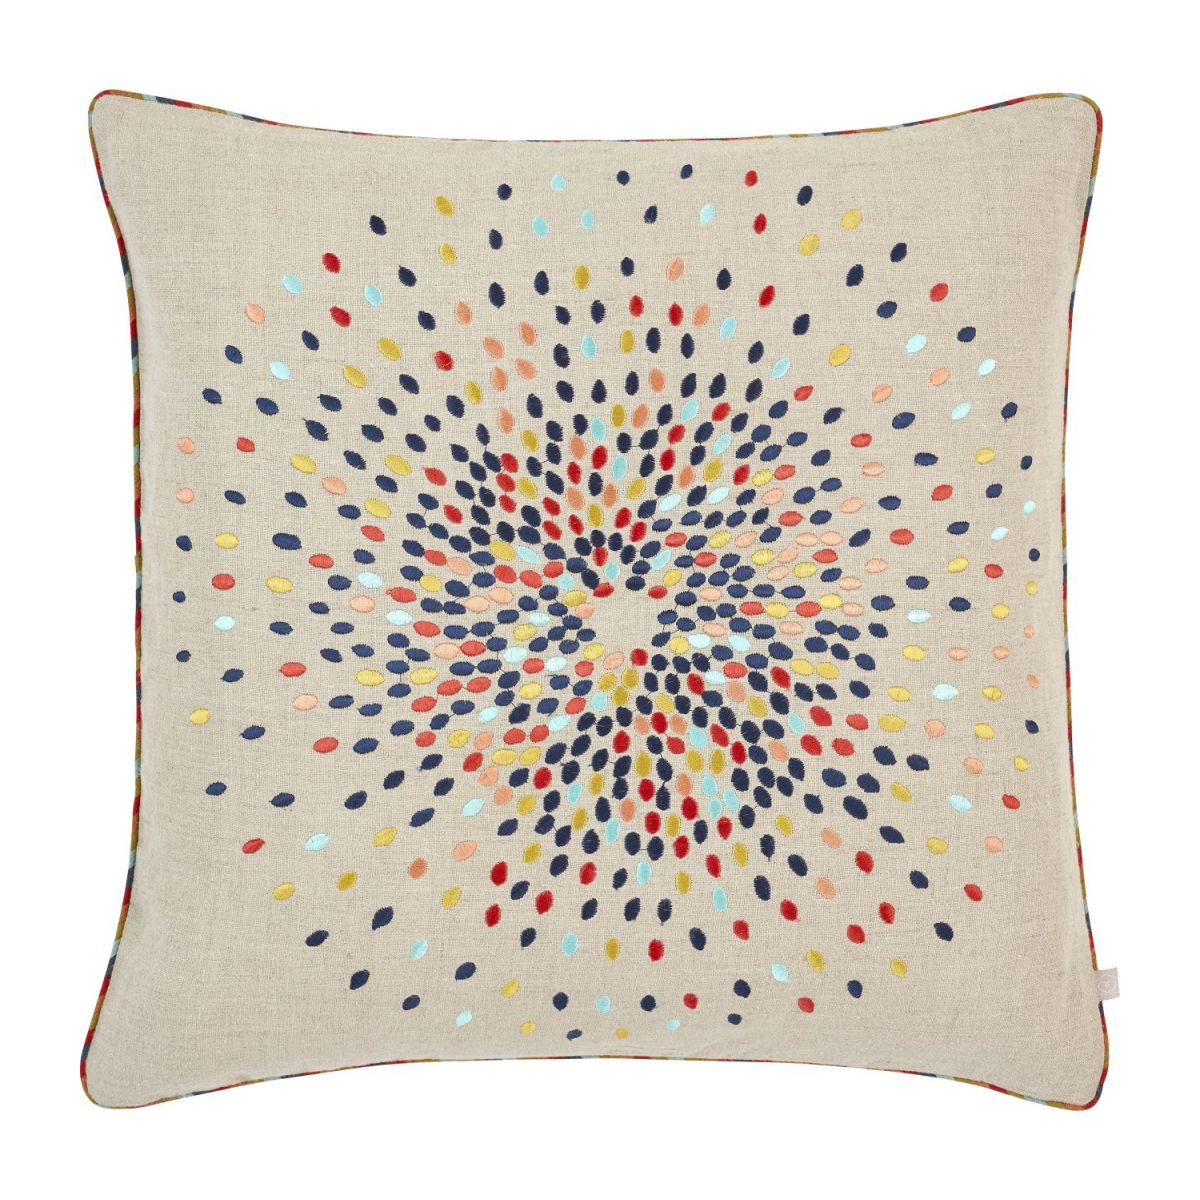 Cushion 50x50cm with patterns n°1